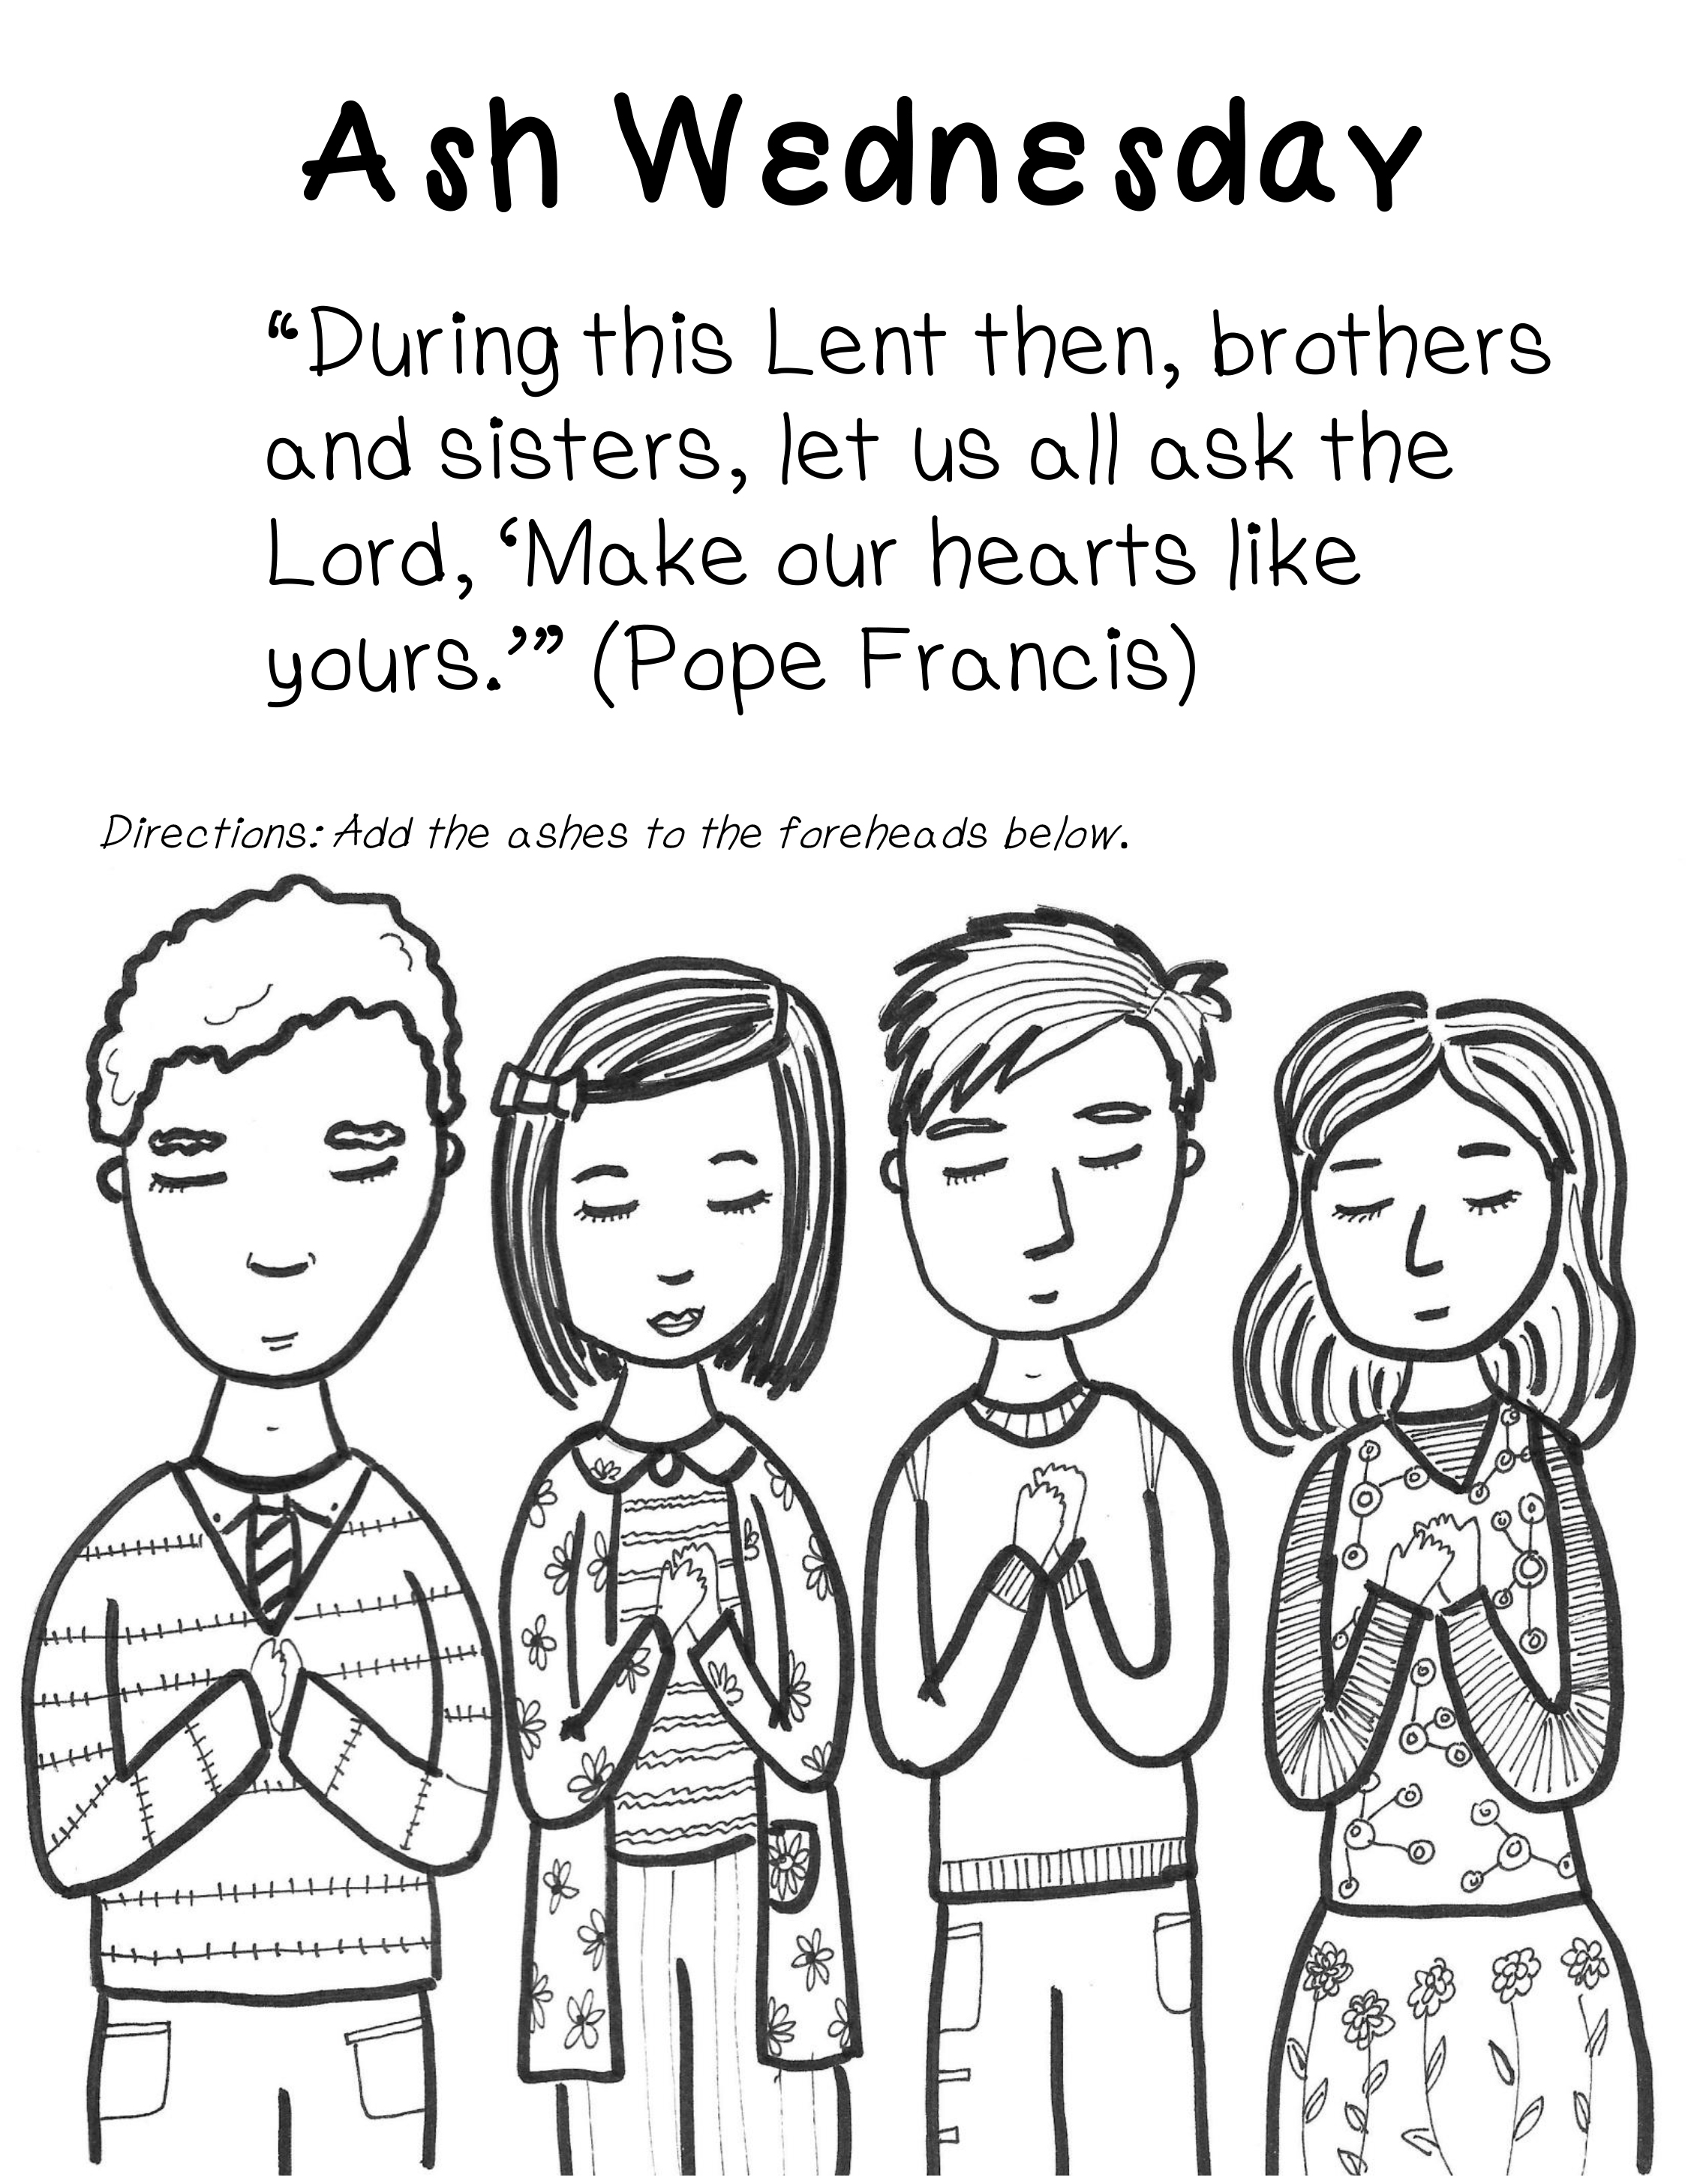 ash wednesday coloring pages ash wednesday coloring pages best coloring pages for kids pages coloring ash wednesday